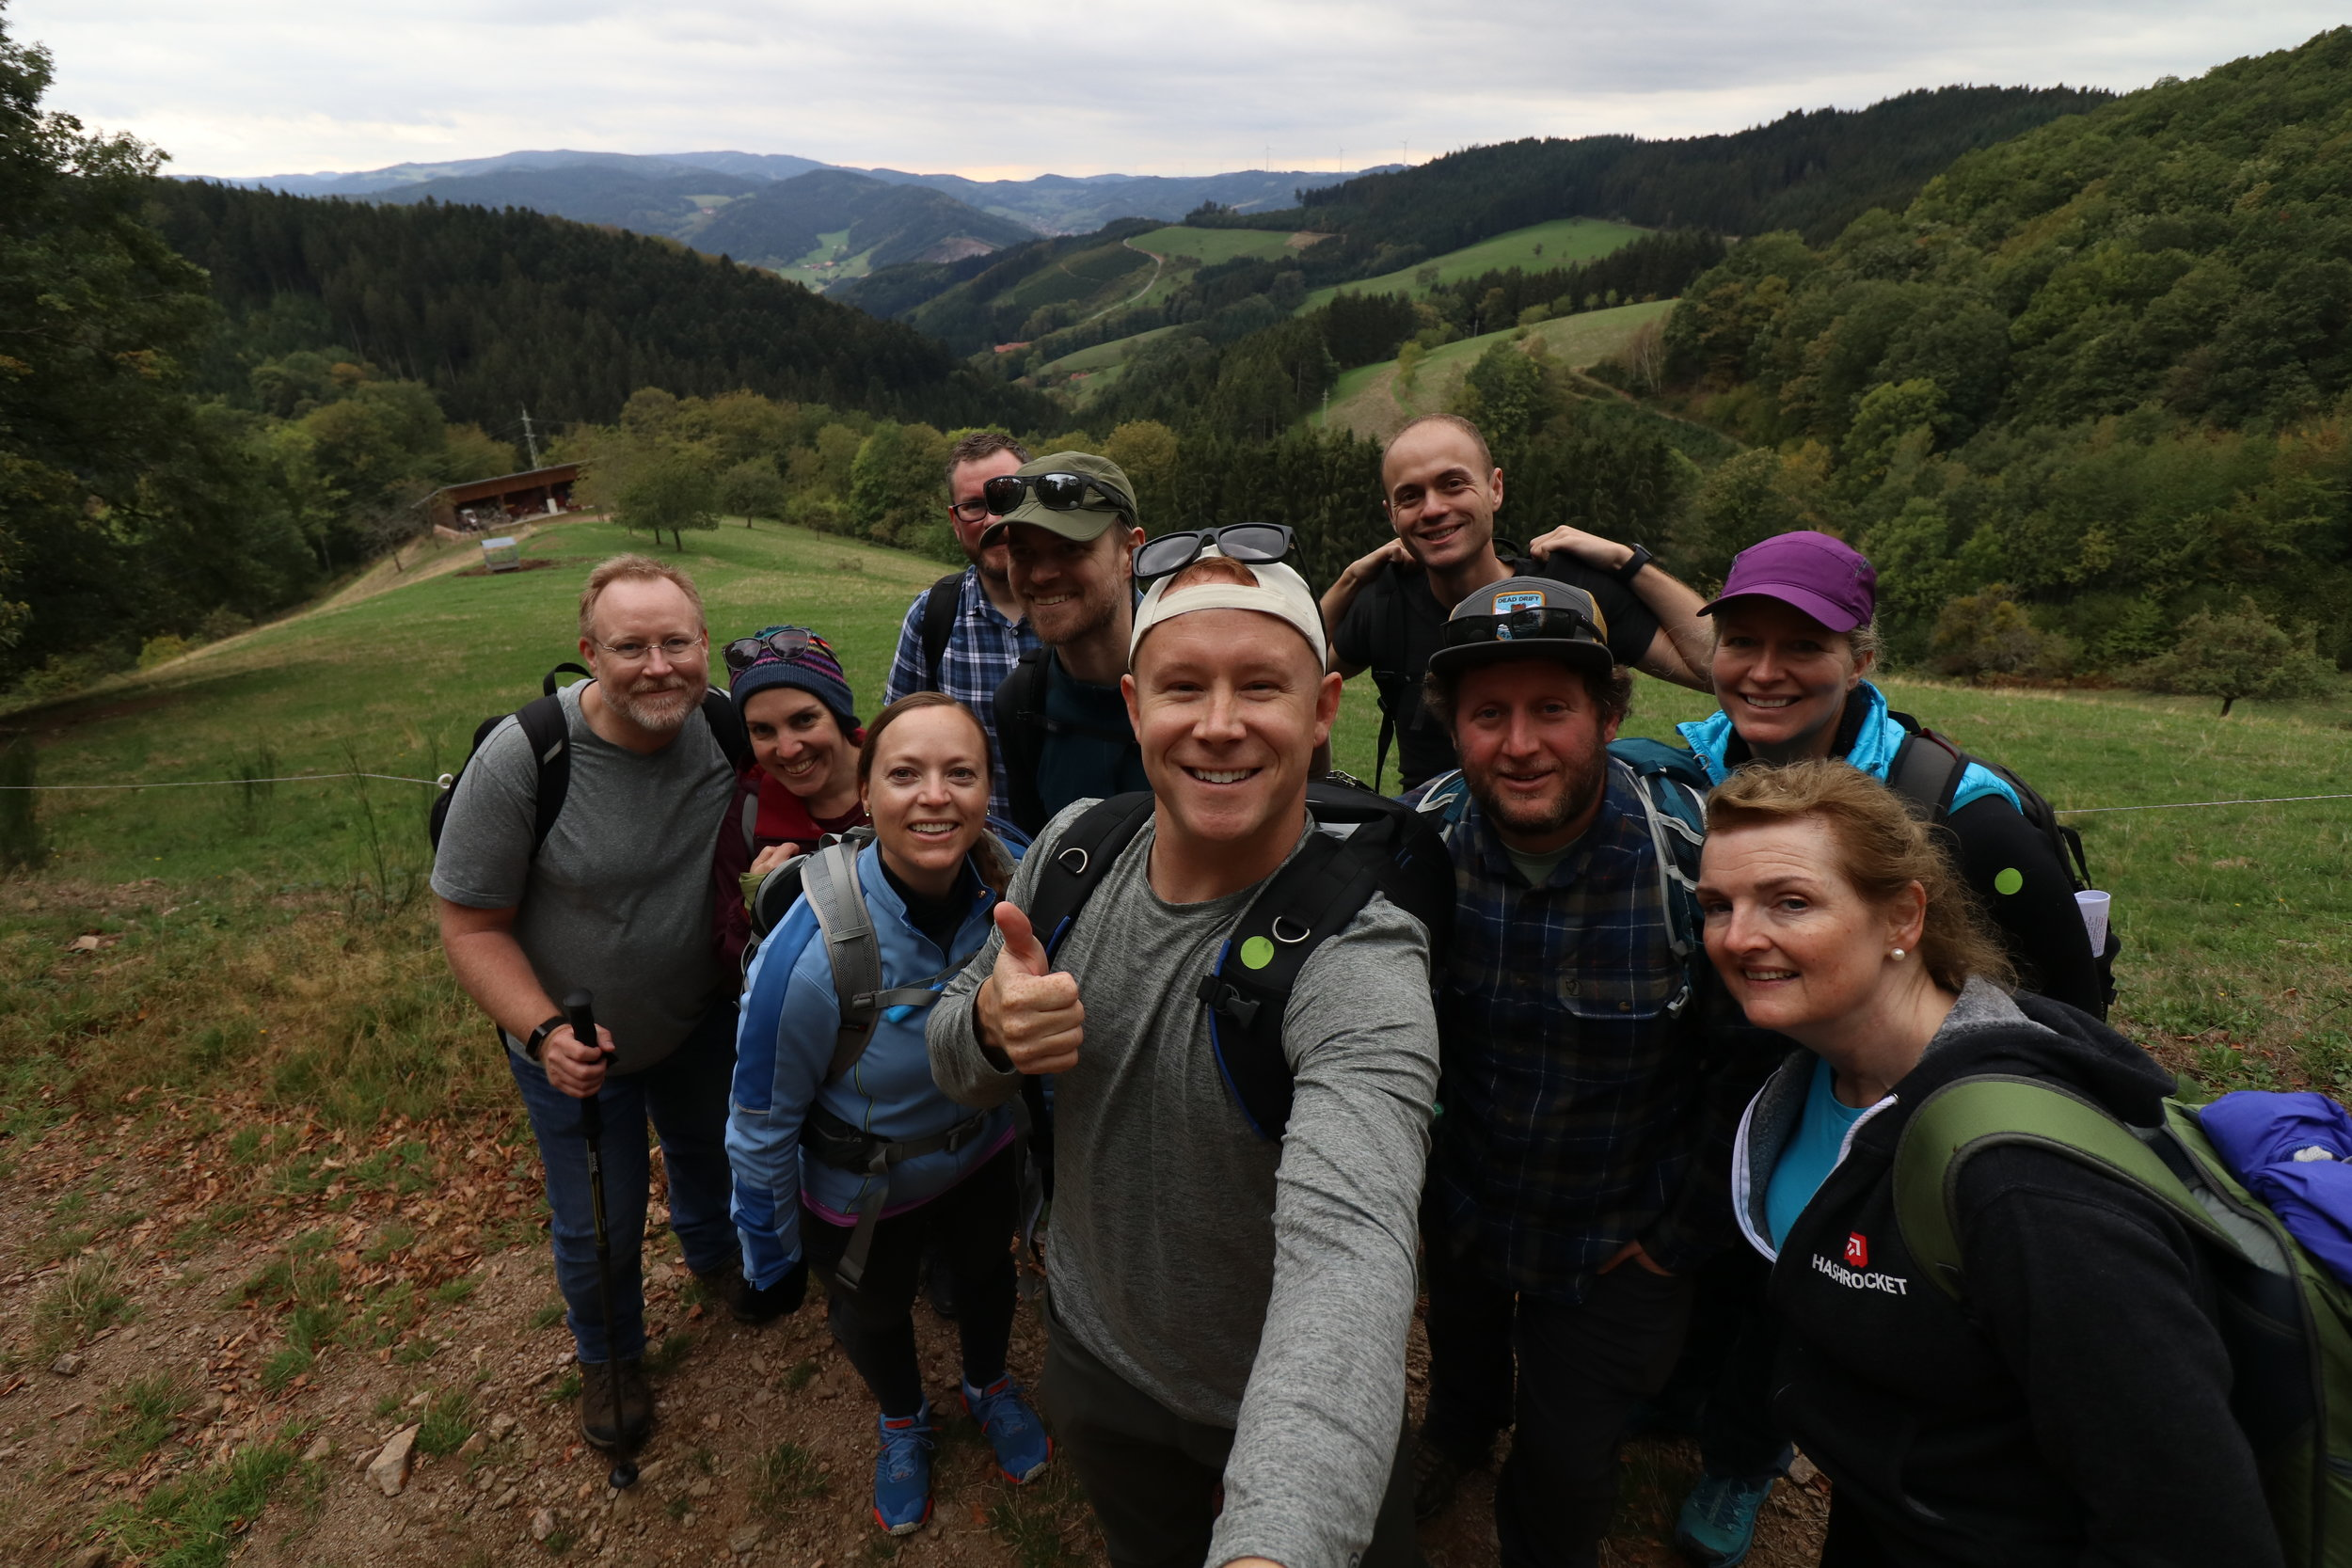 Once upon a time… - A fairytale like Walkshop retreat through the Black Forest of Germany… right where Hansel and Gretel got lost.October 2018